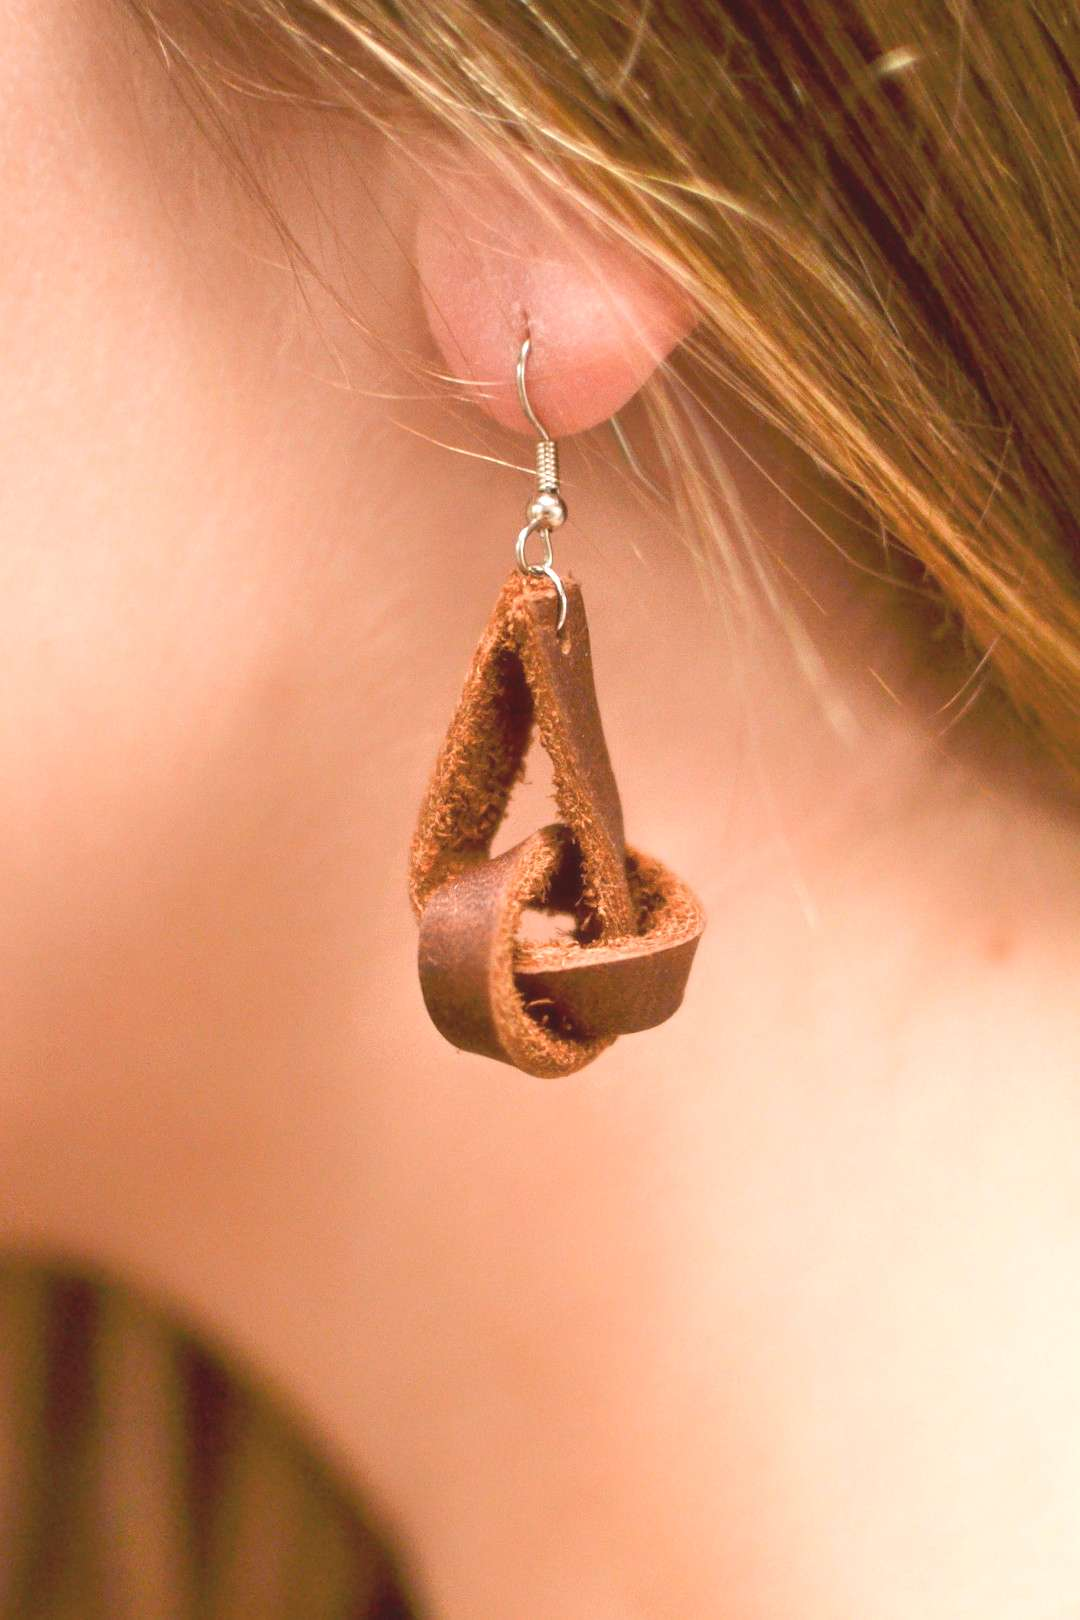 Handmade leather earrings - your chioce color block circles with Argentium or gold-colored ear wire